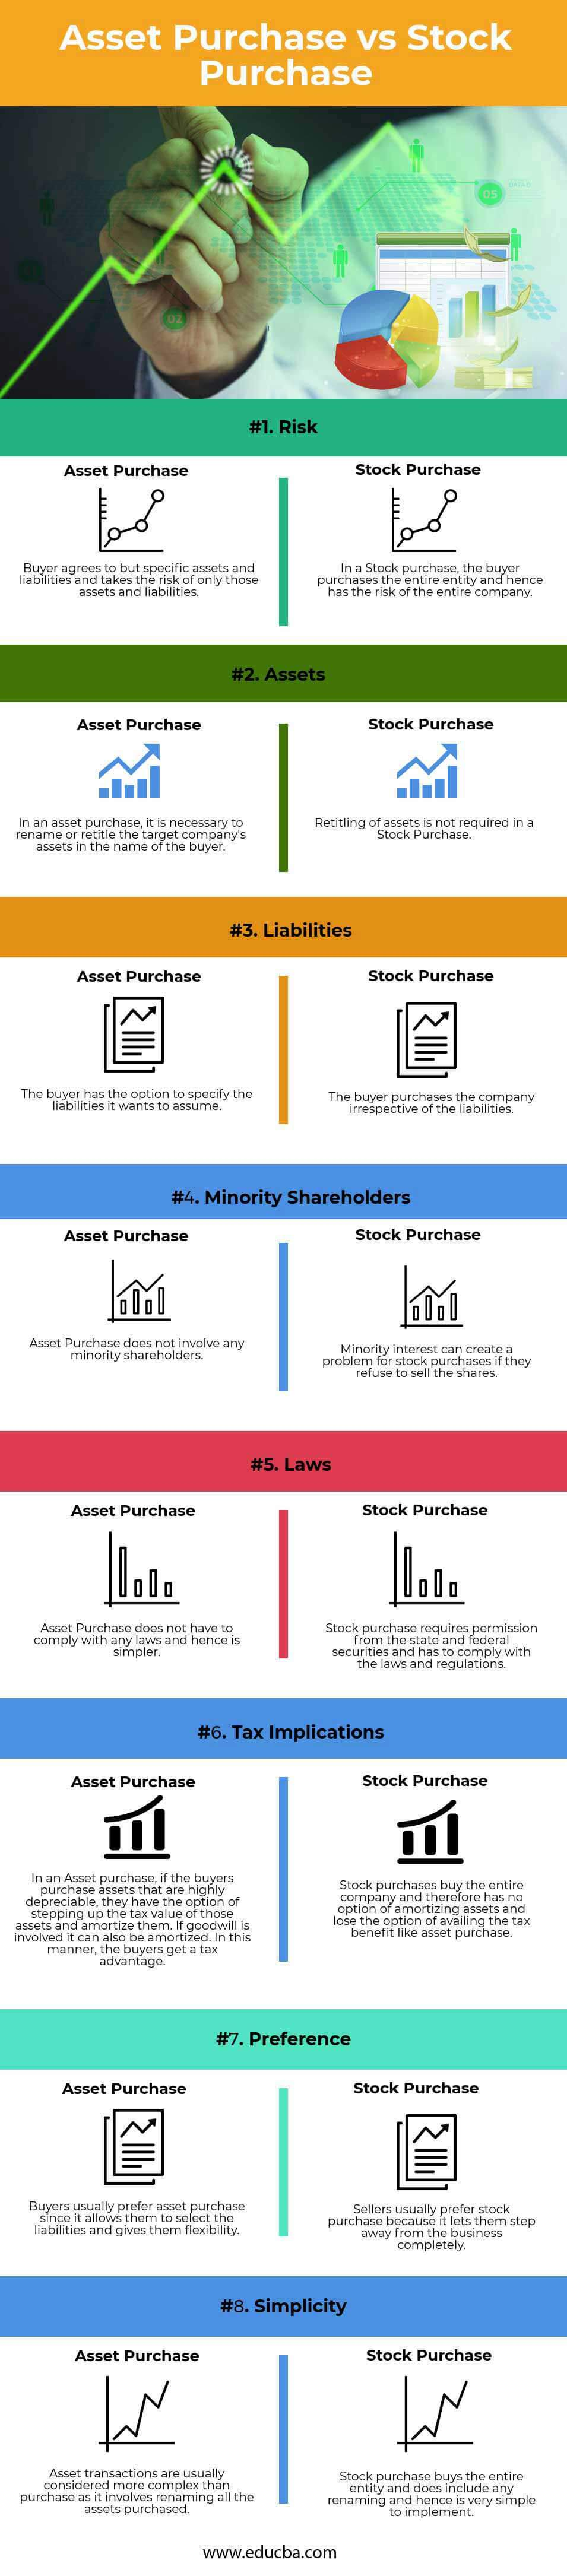 Asset-Purchase-vs-Stock-Purchase-info